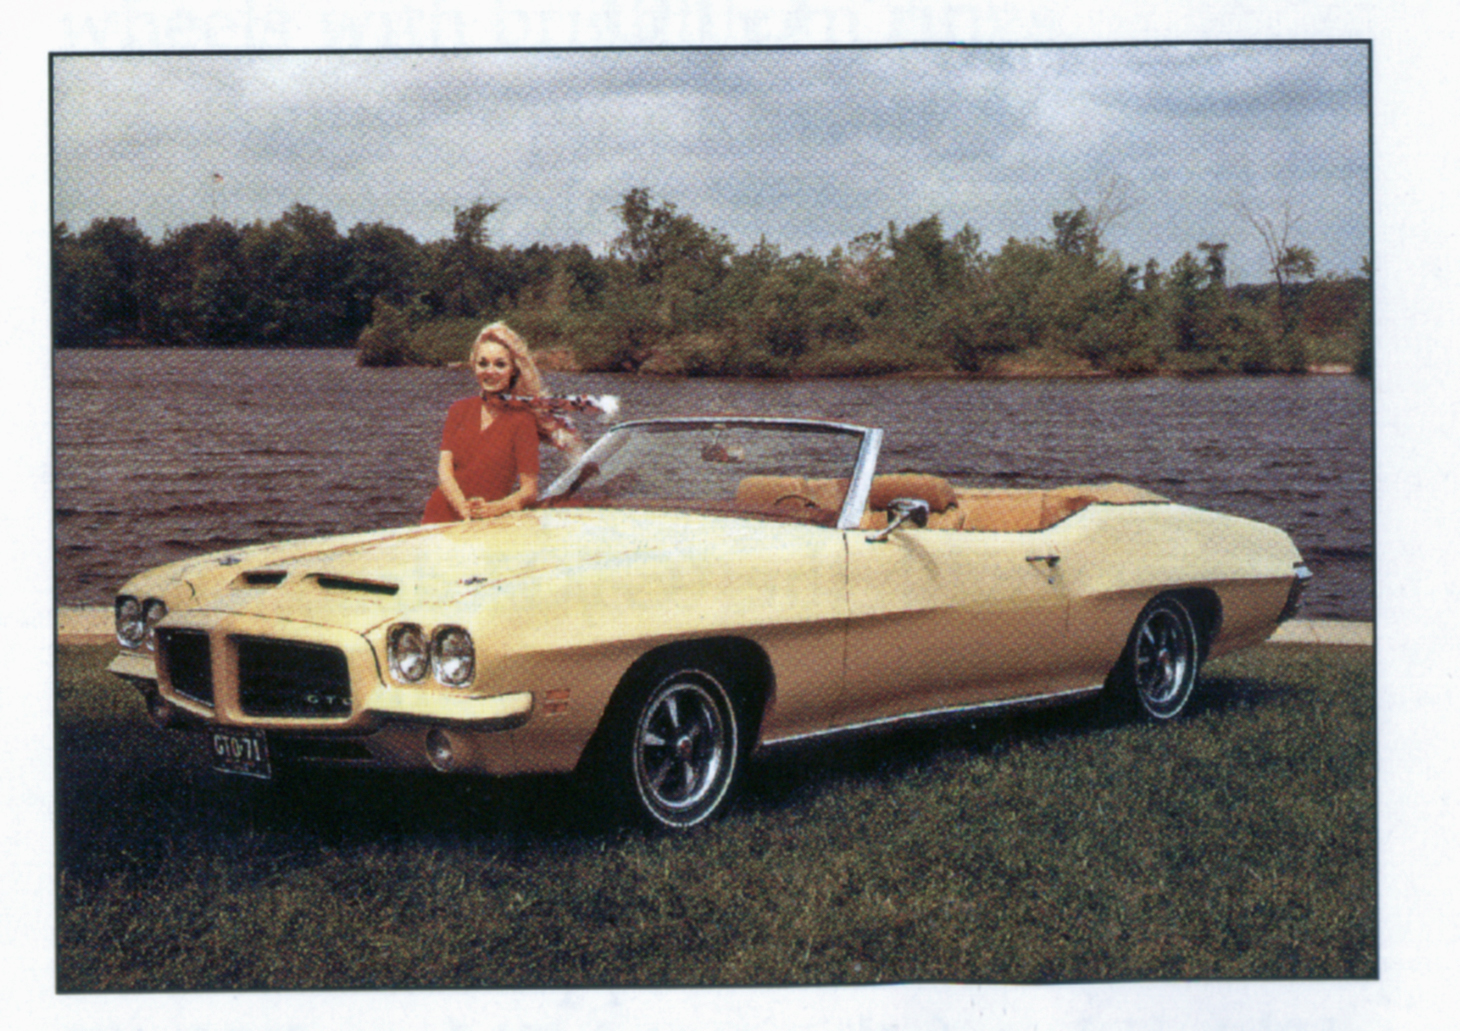 a 1972 gto convertible has been a popular urban legend for decades due to a simple typo in an early pre 1975 pontiac motor division report  [ 1460 x 1031 Pixel ]